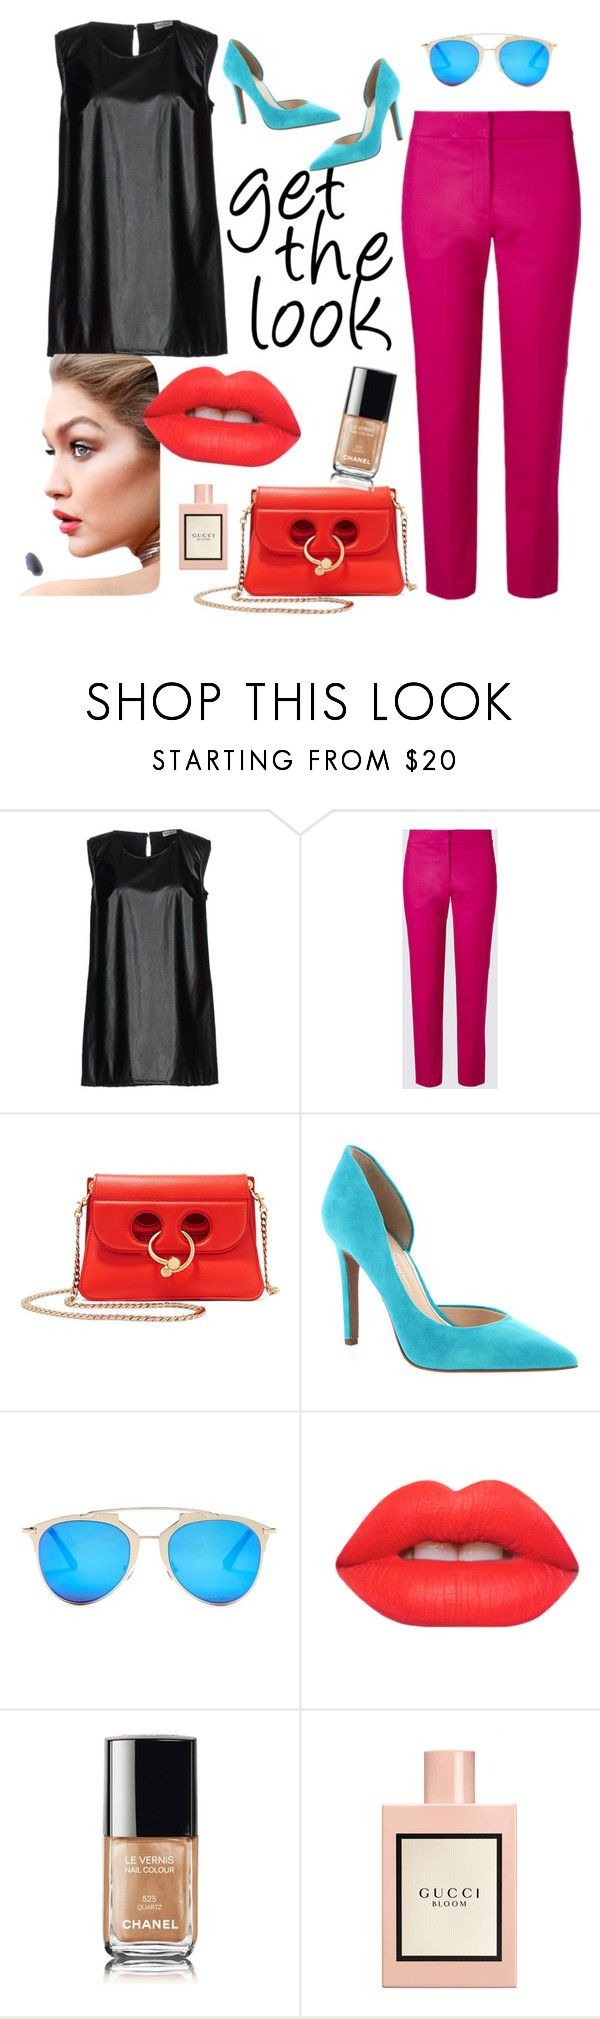 """Untitled #44"" by bebebelabee on Polyvore featuring J.W. Anderson, Jessica Simpson, AQS by Aquaswiss, Lime Crime, Chanel and Gucci"